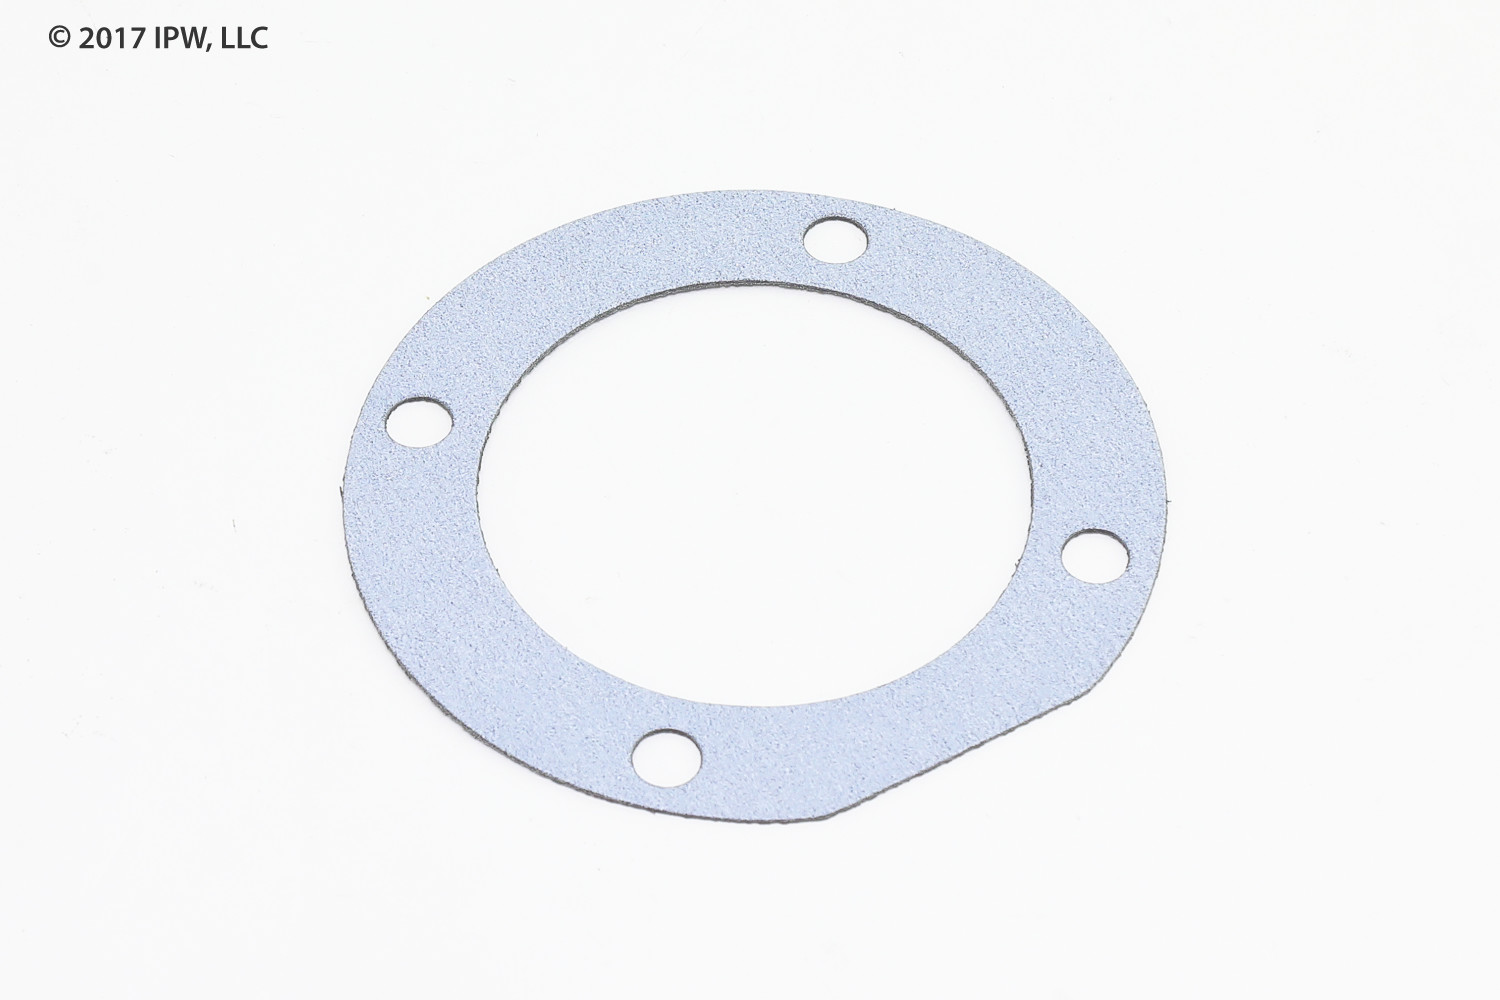 Xylem-McDonnell & Miller 302600 CO-12, HEAD GASKET